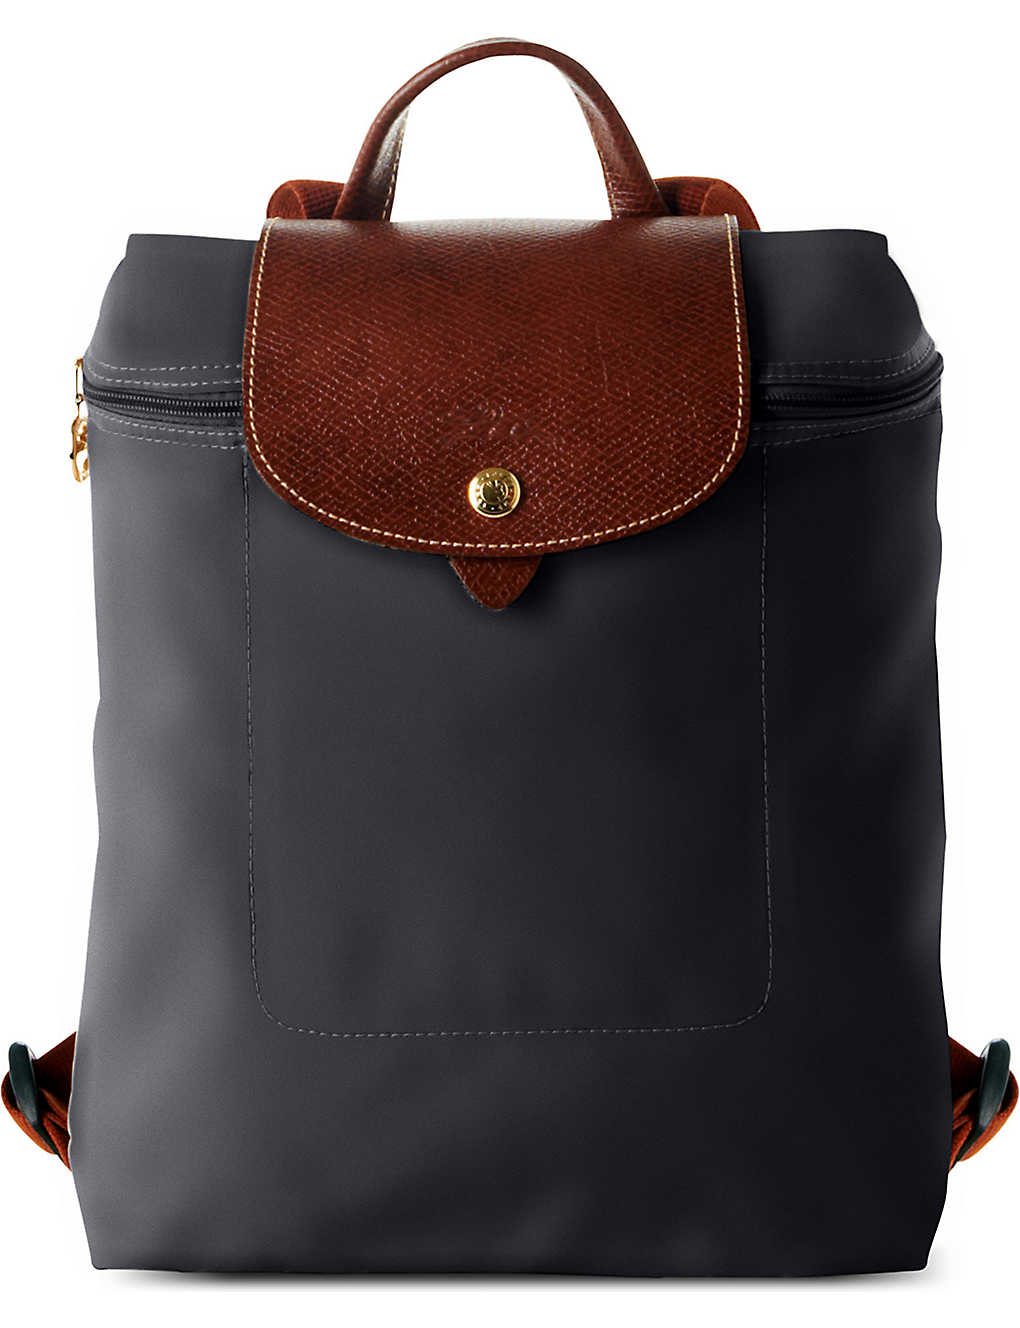 2cda29905a62 LONGCHAMP - Le Pliage backpack